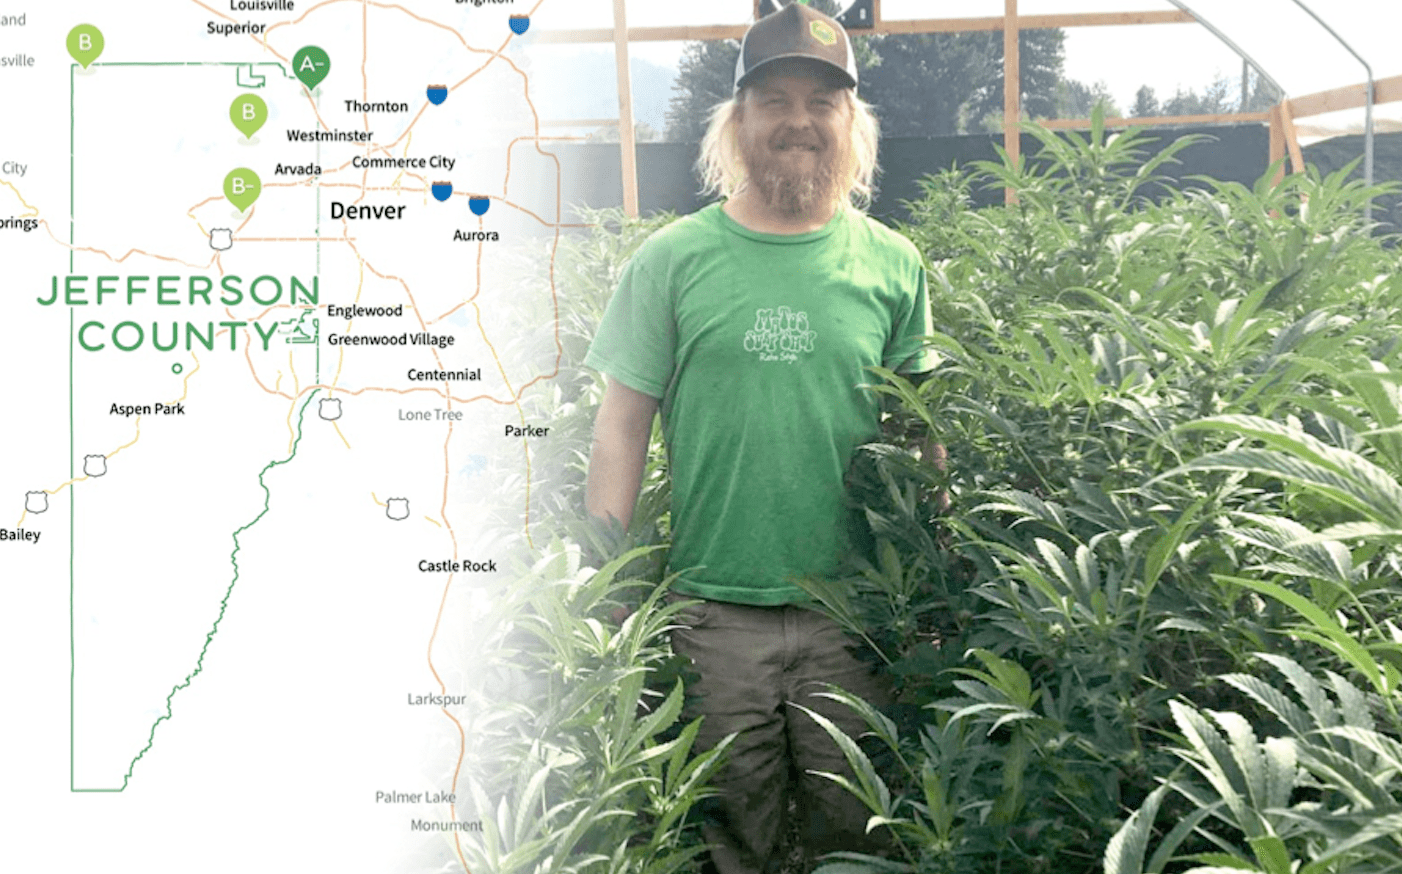 Weed Delivery App Can Help Jefferson County Pot Dealers, No More Bail Bonds Calls